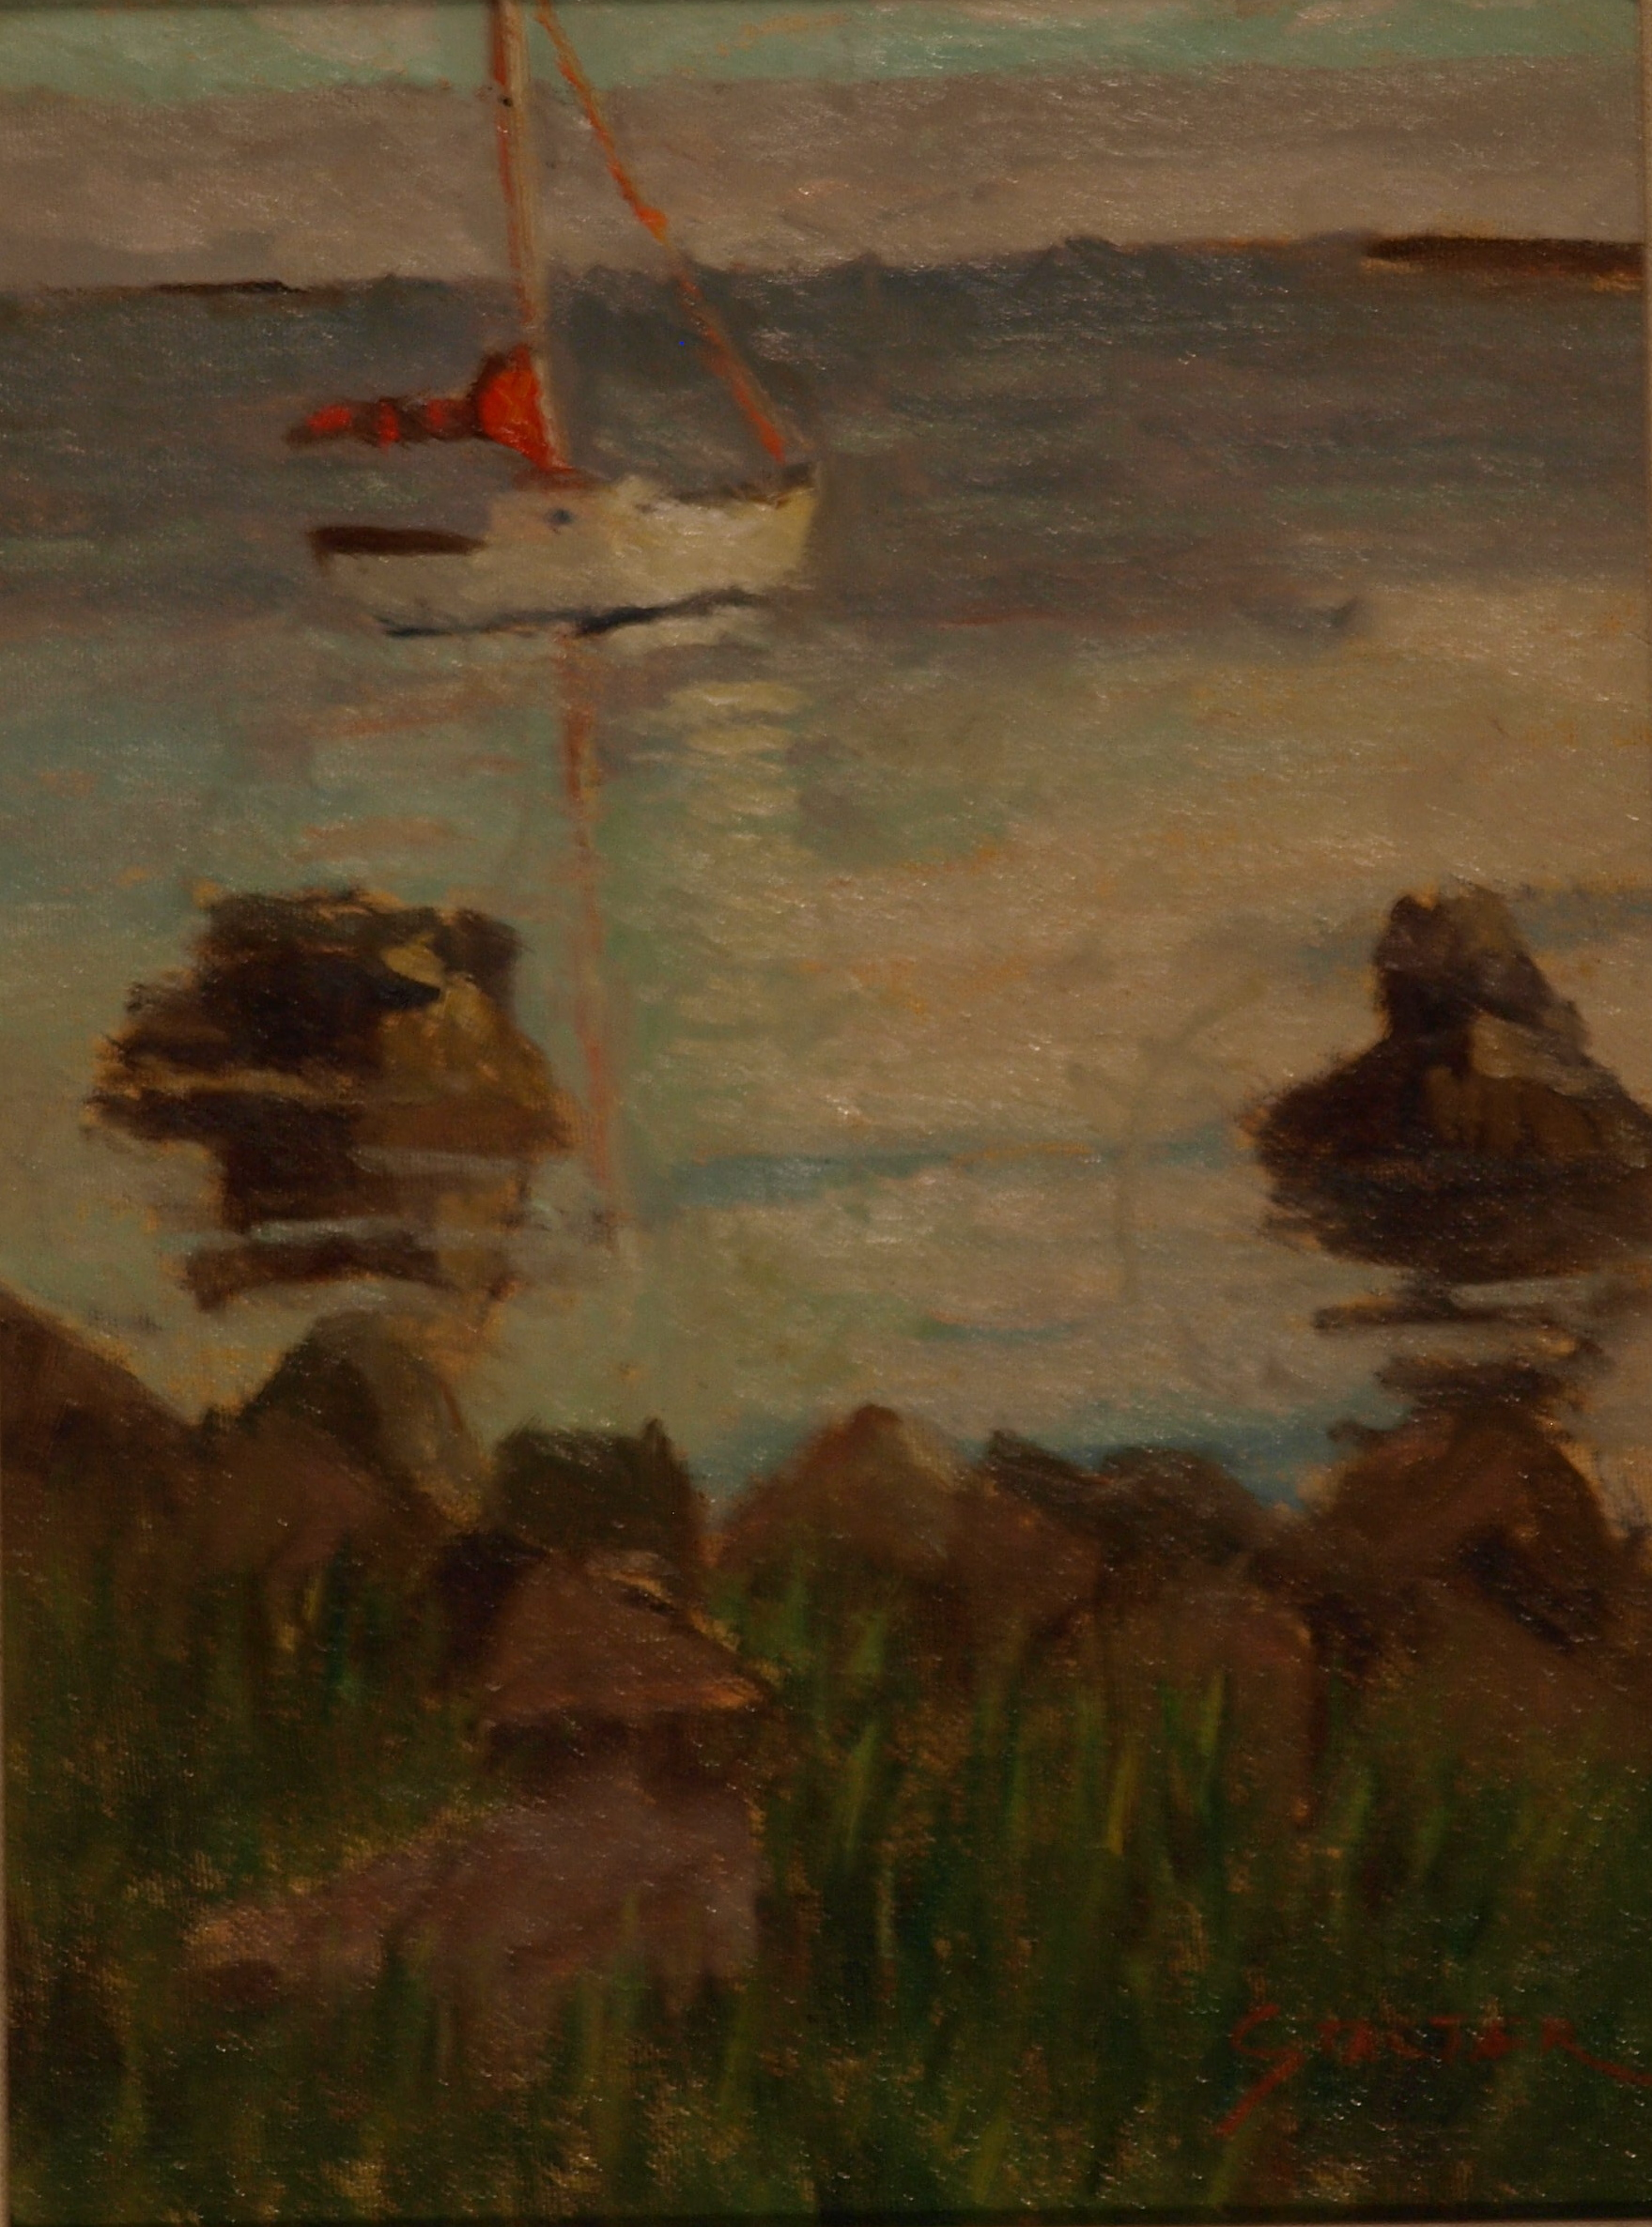 Red Sail, Oil on Canvas on Panel, 12 x 9 Inches, by Richard Stalter, $225